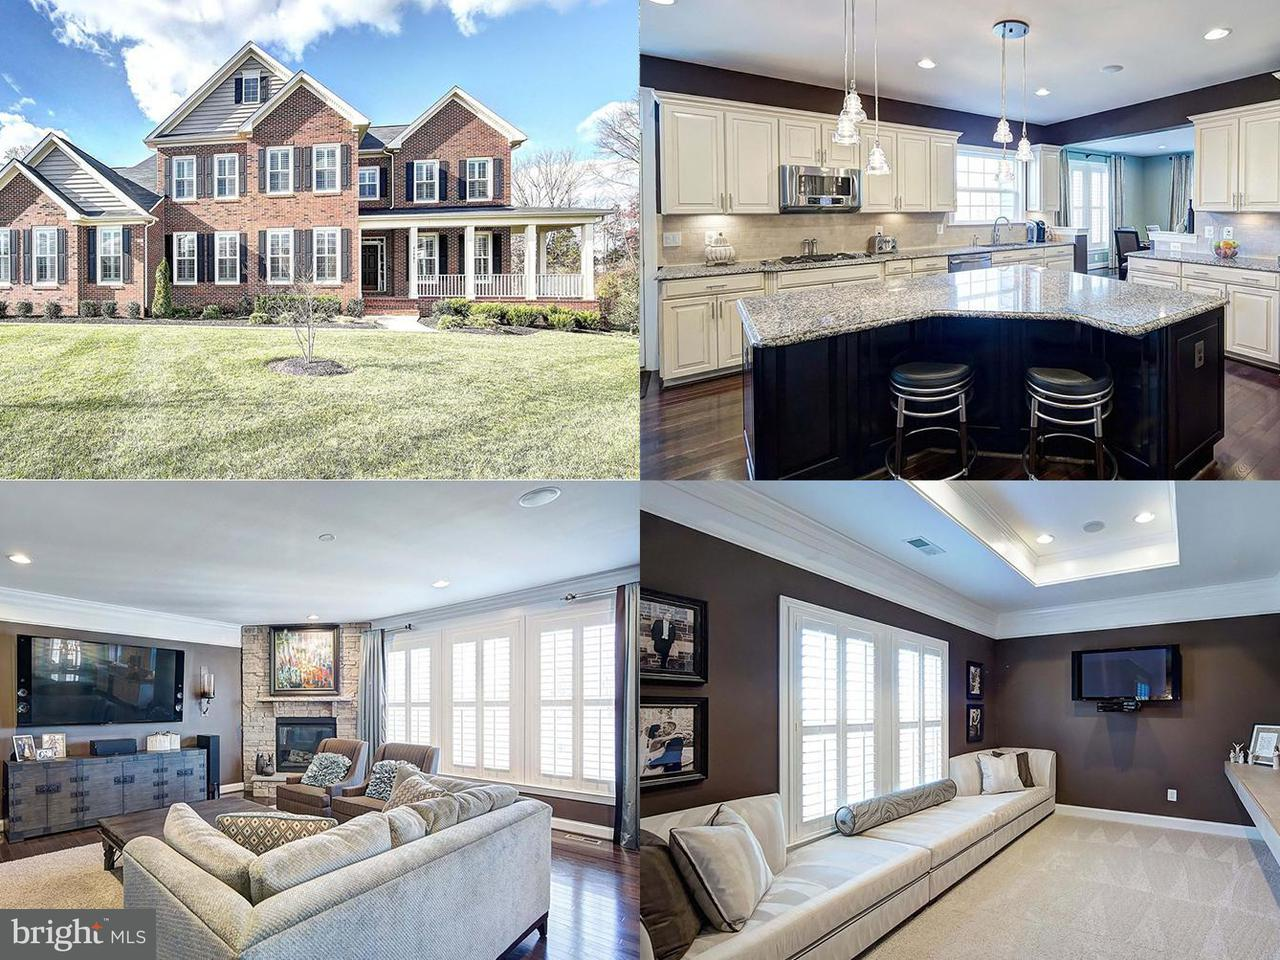 Single Family Home for Sale at 41501 Goshen Ridge Place 41501 Goshen Ridge Place Aldie, Virginia 20105 United States